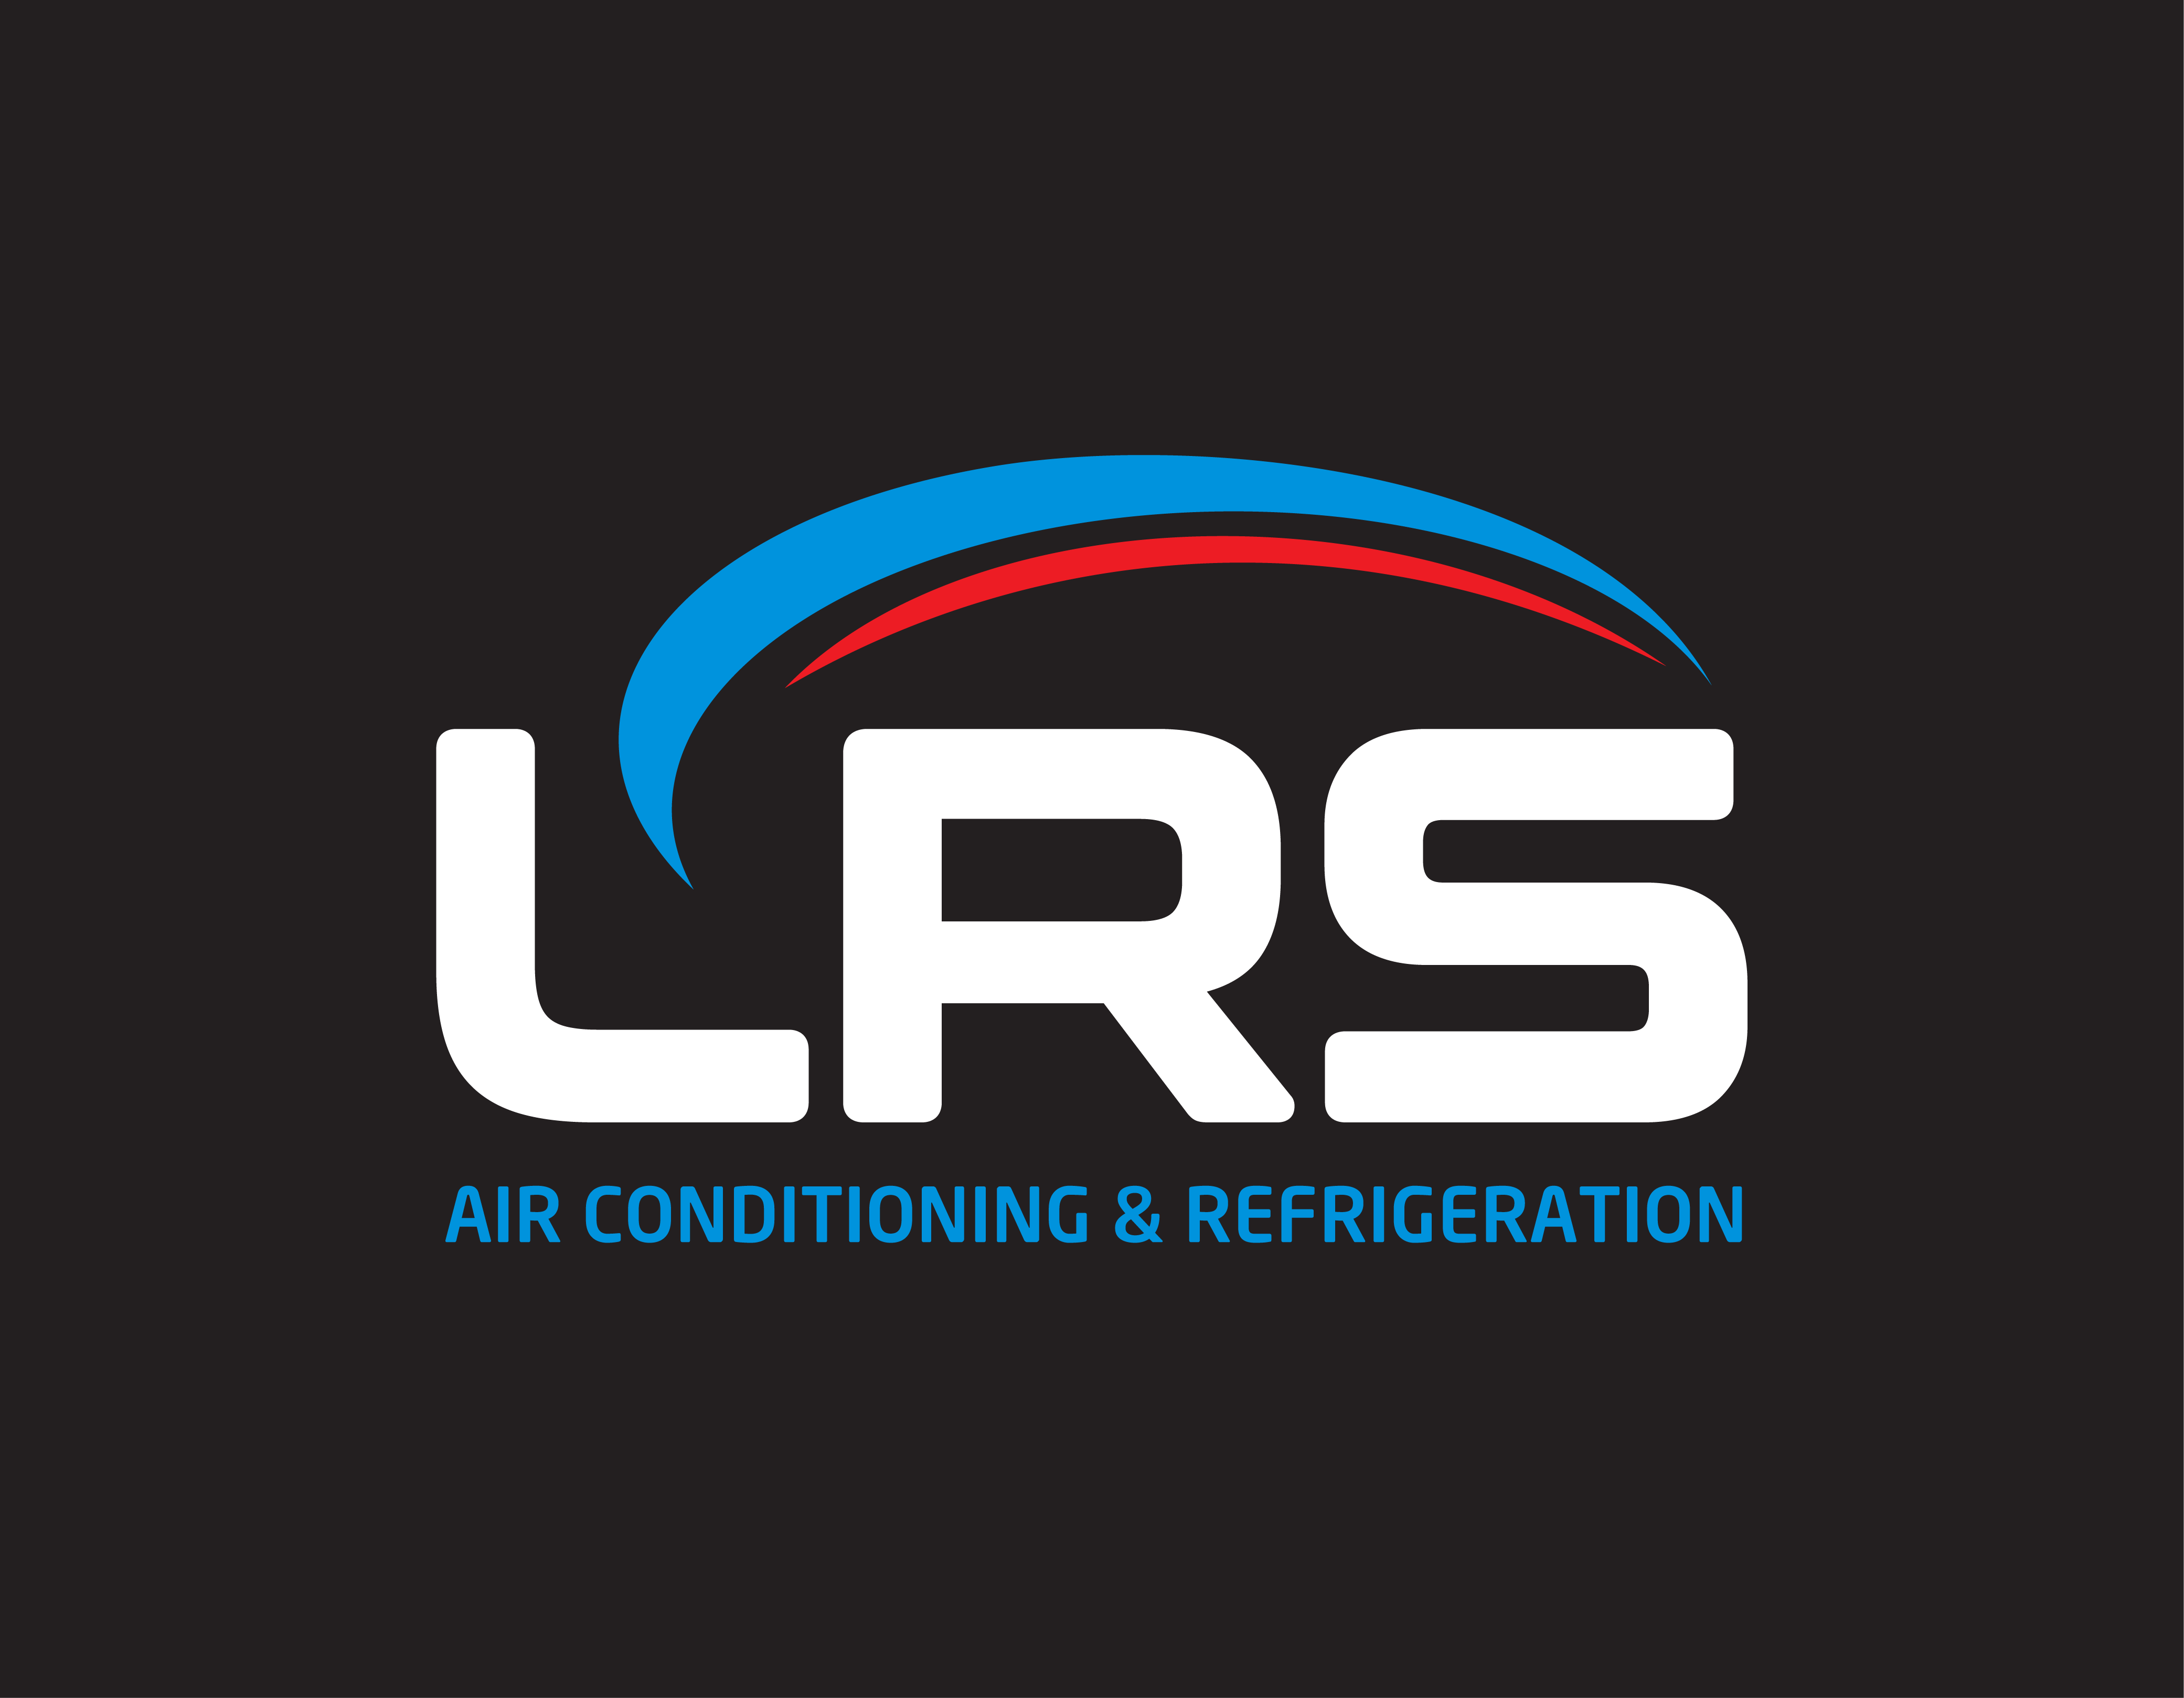 Company Logo design required for Air Conditioning and Refrigeration company